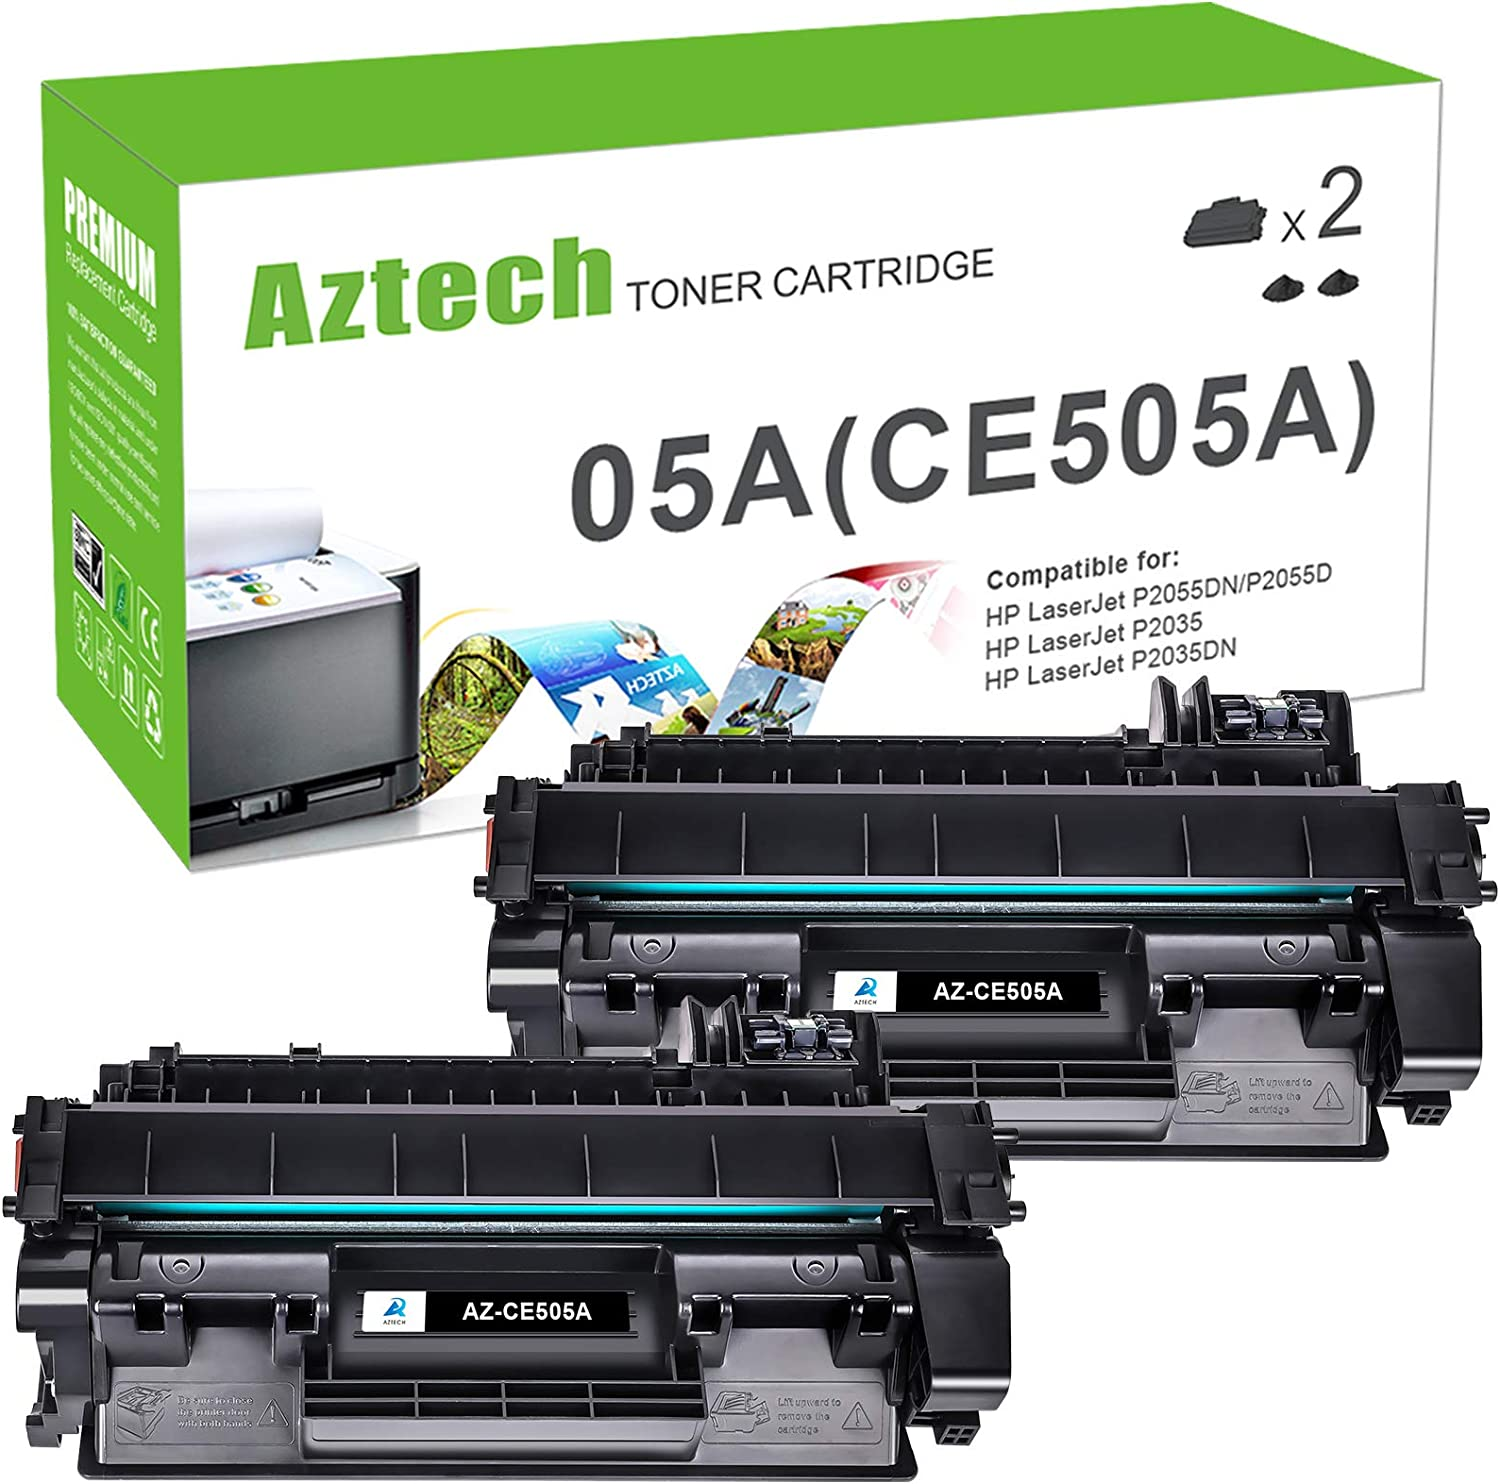 CE505A Laser Printer Cartridge use for HP Laserjet P2035N P2050 Printer 3-Pack Black 2,300 Pages Compatible High Yield 05A